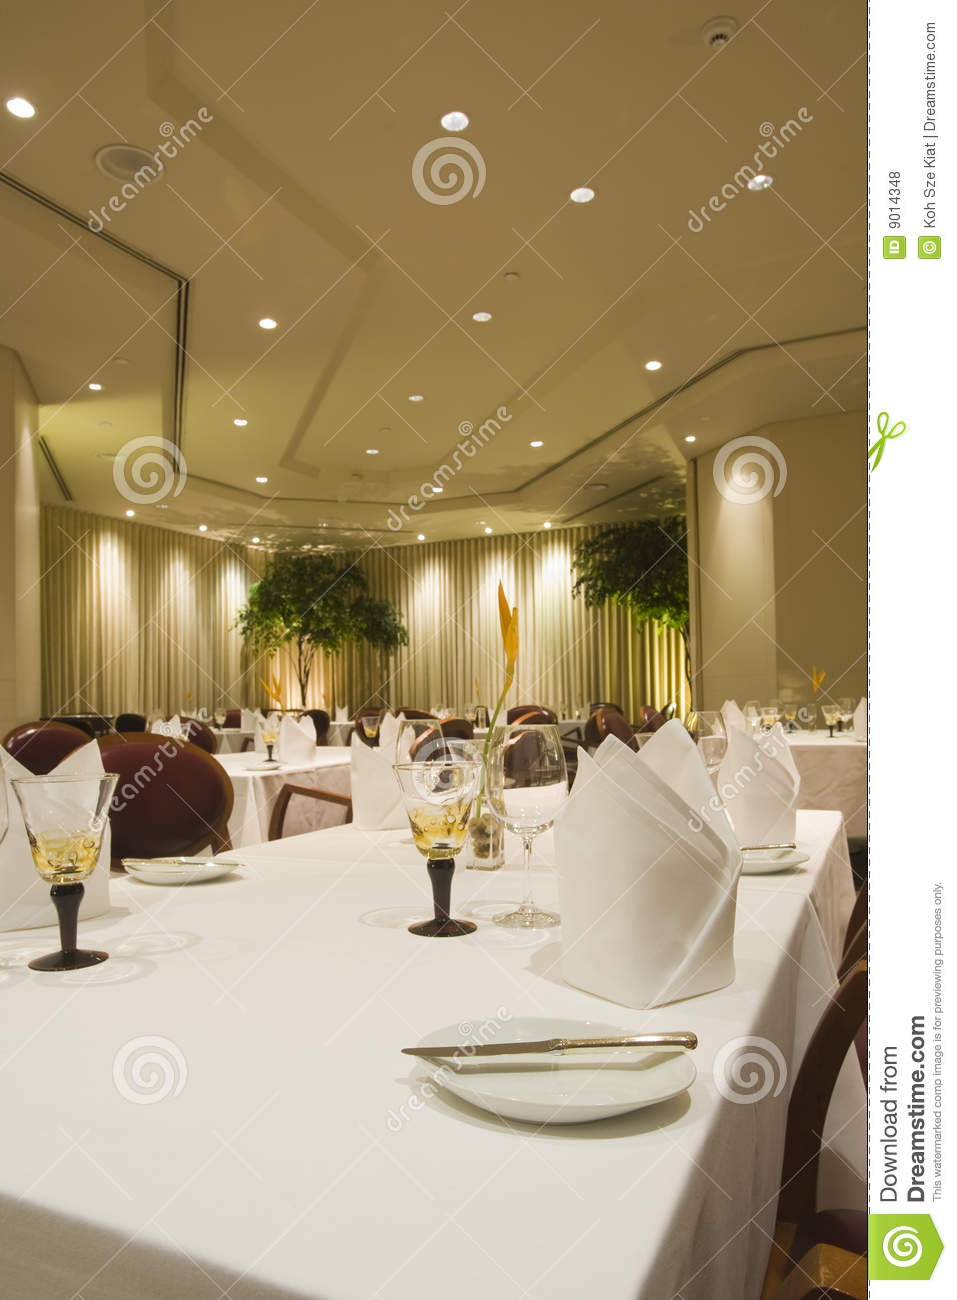 Italian fine dining restaurant interior stock photo